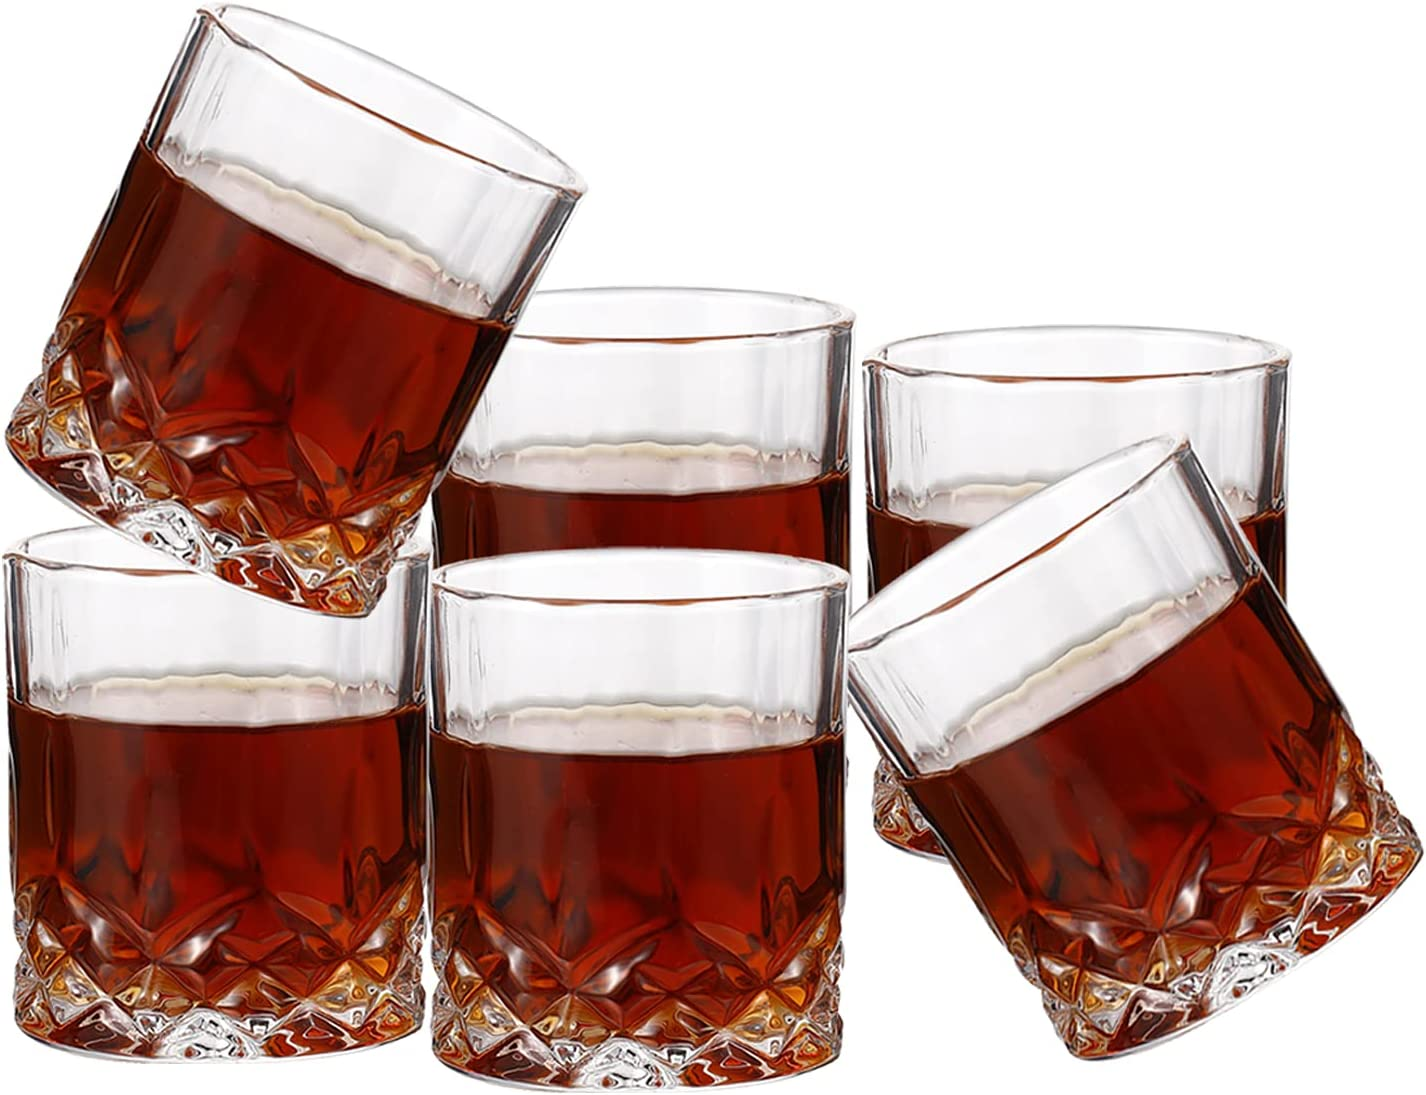 YJGS 6PC Whiskey Glasses Decanter Milwaukee Clearance SALE! Limited time! Mall for Ital Sets